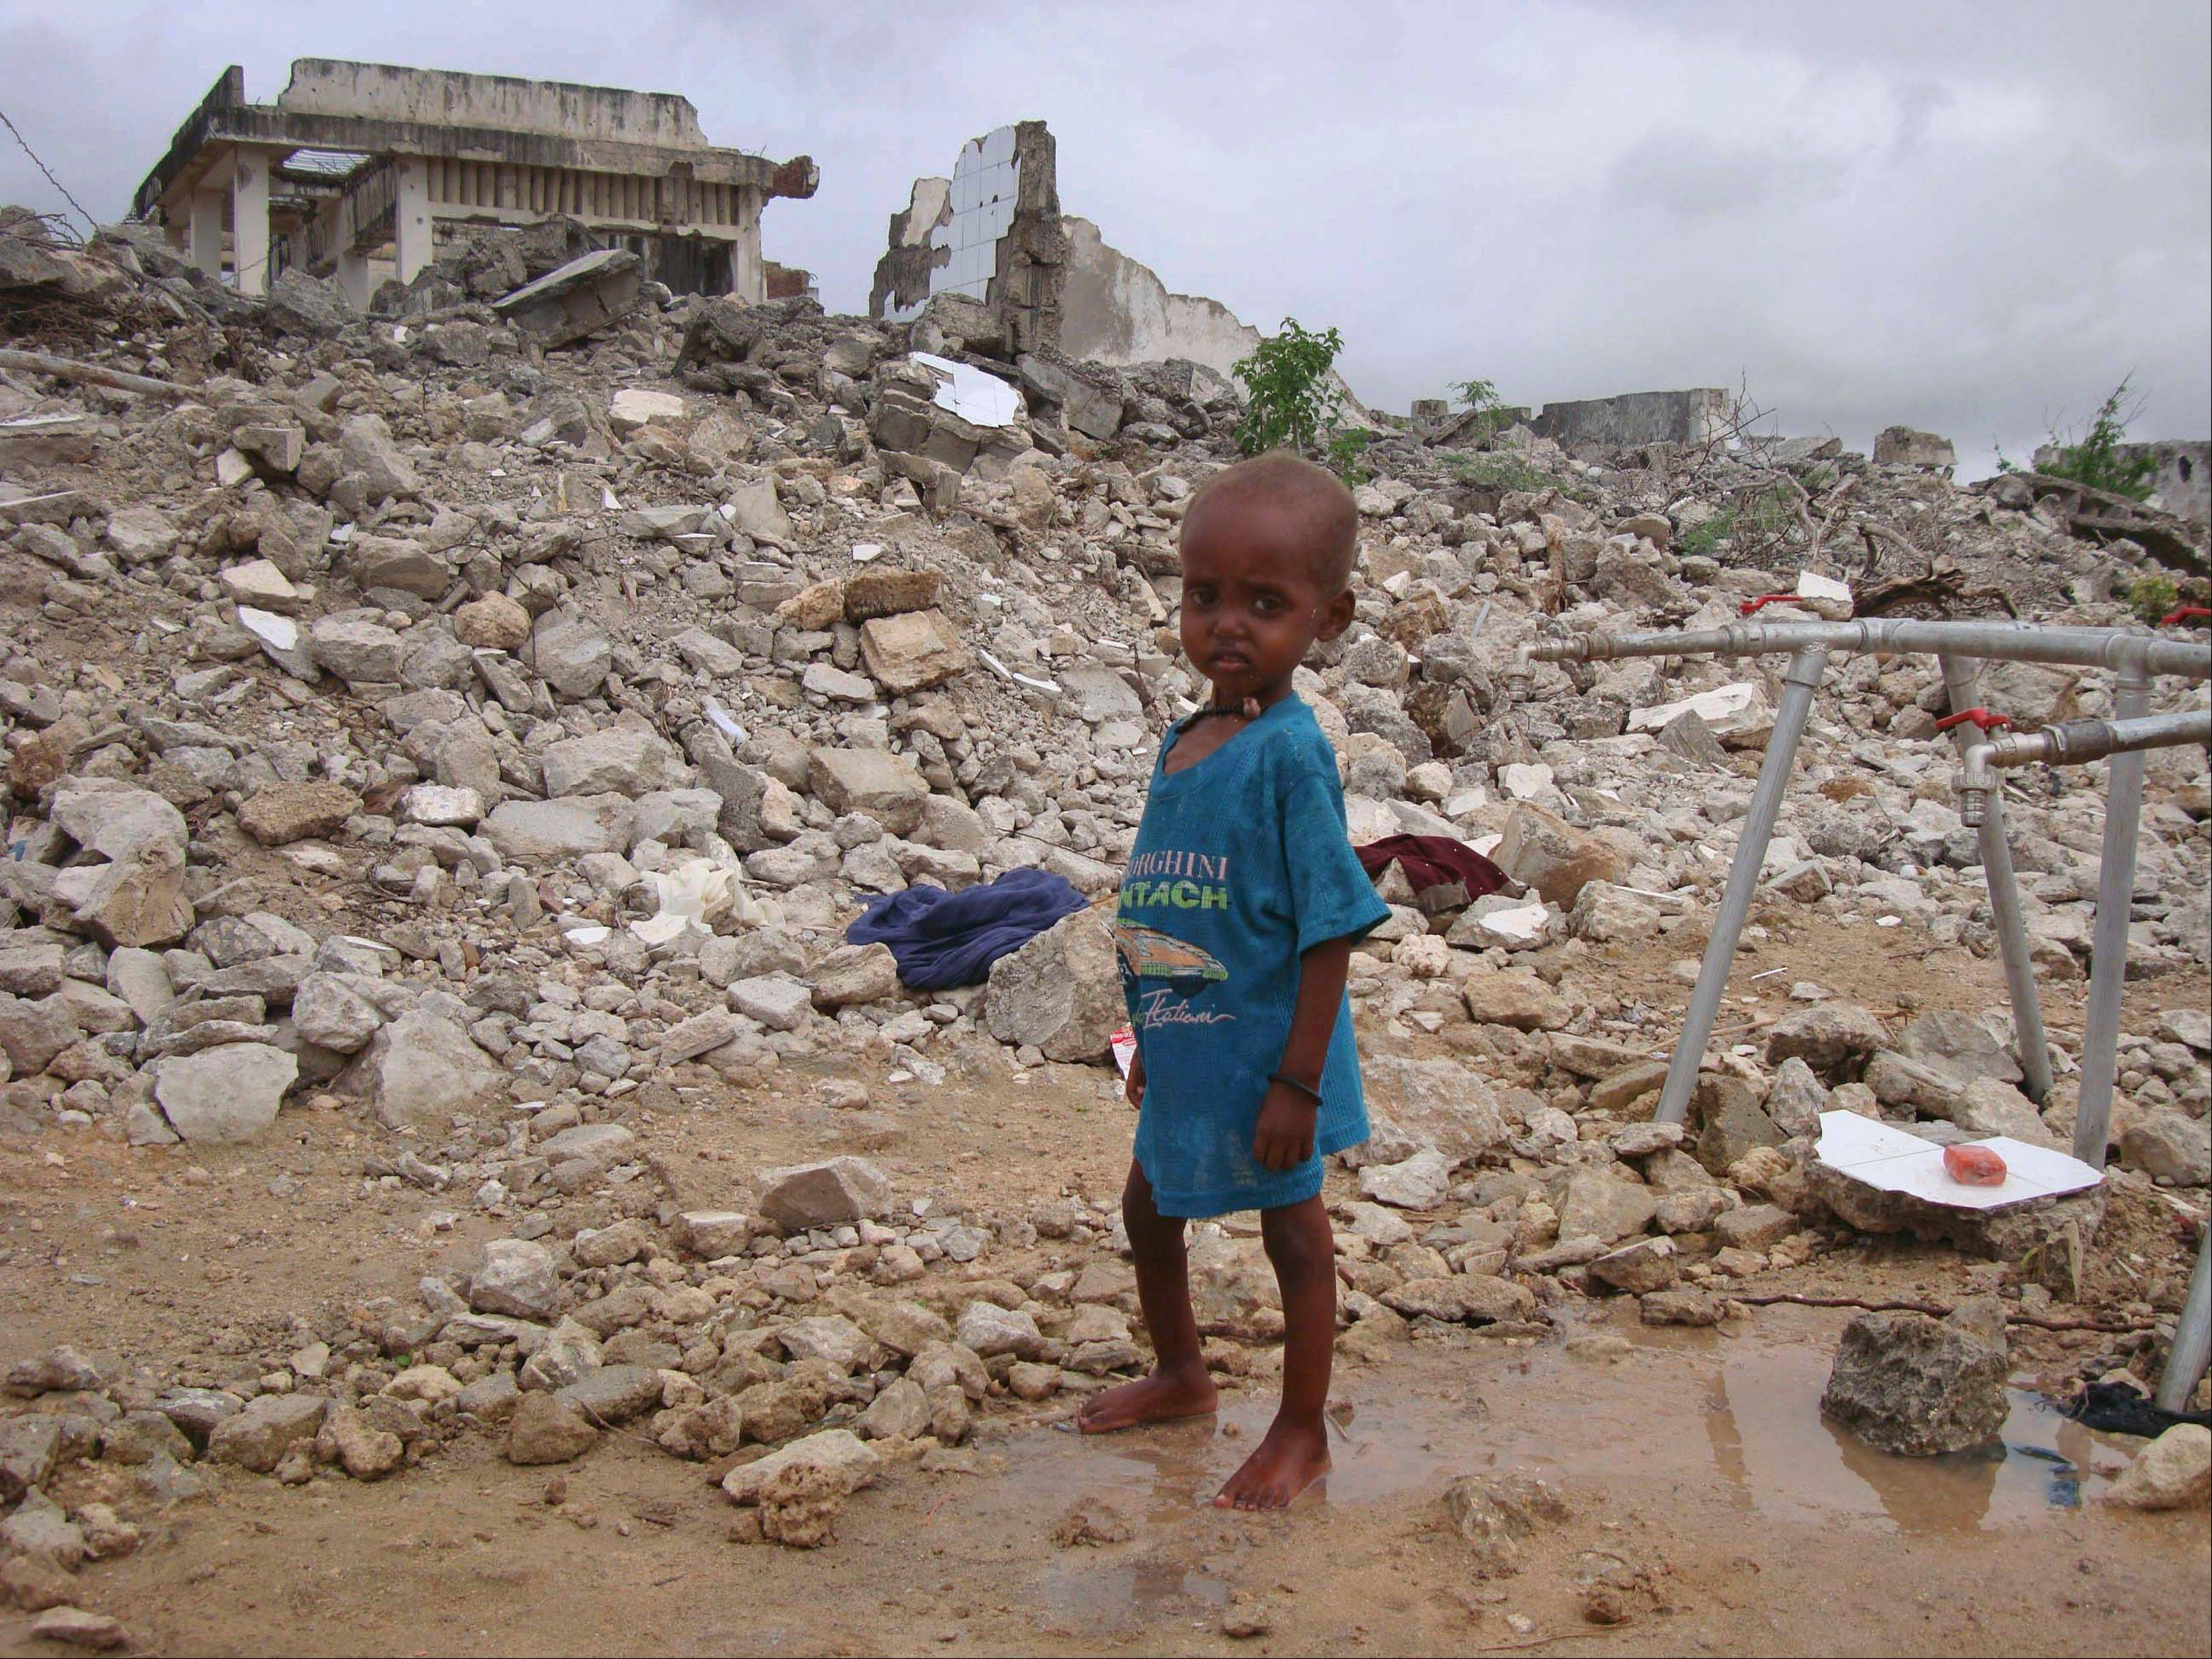 A Somali child from southern Somalia stands in the rubble of a destroyed building near a refugee camp in Mogadishu, Somalia, Tuesday, Aug 9, 2011. The number of people fleeing famine-hit areas of Somalia is likely to rise dramatically and could overwhelm international aid efforts in the Horn of Africa, a U.N. aid official said Tuesday.